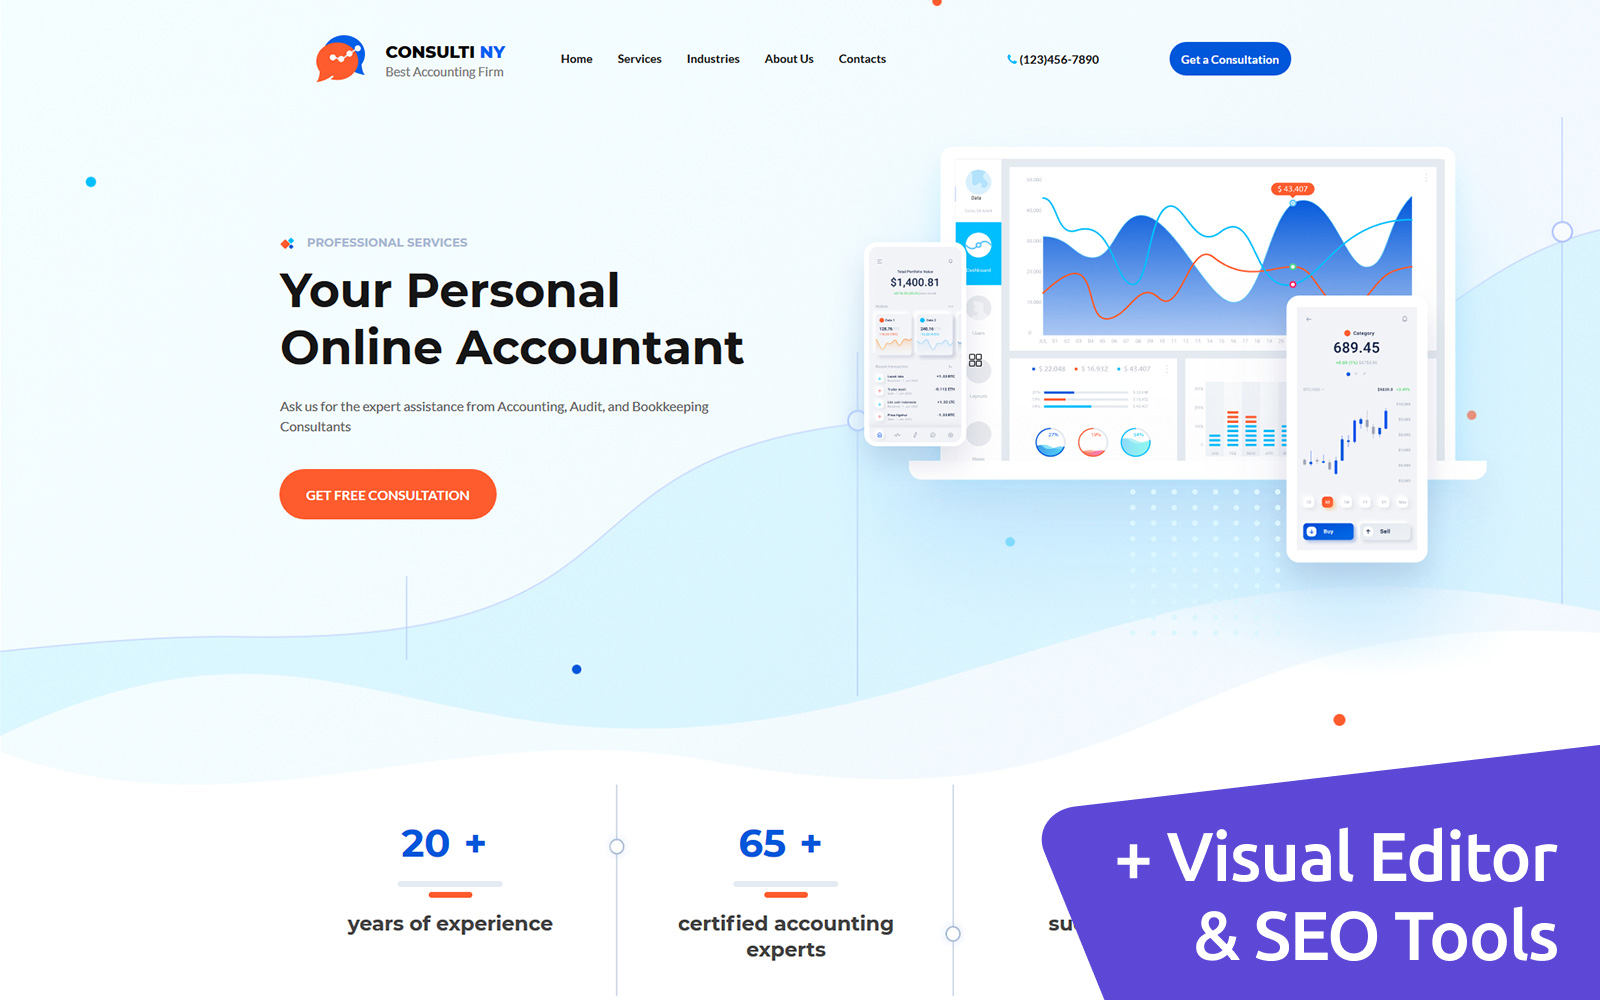 Consulti NY - Accounting Firm MotoCMS Landing Page Template